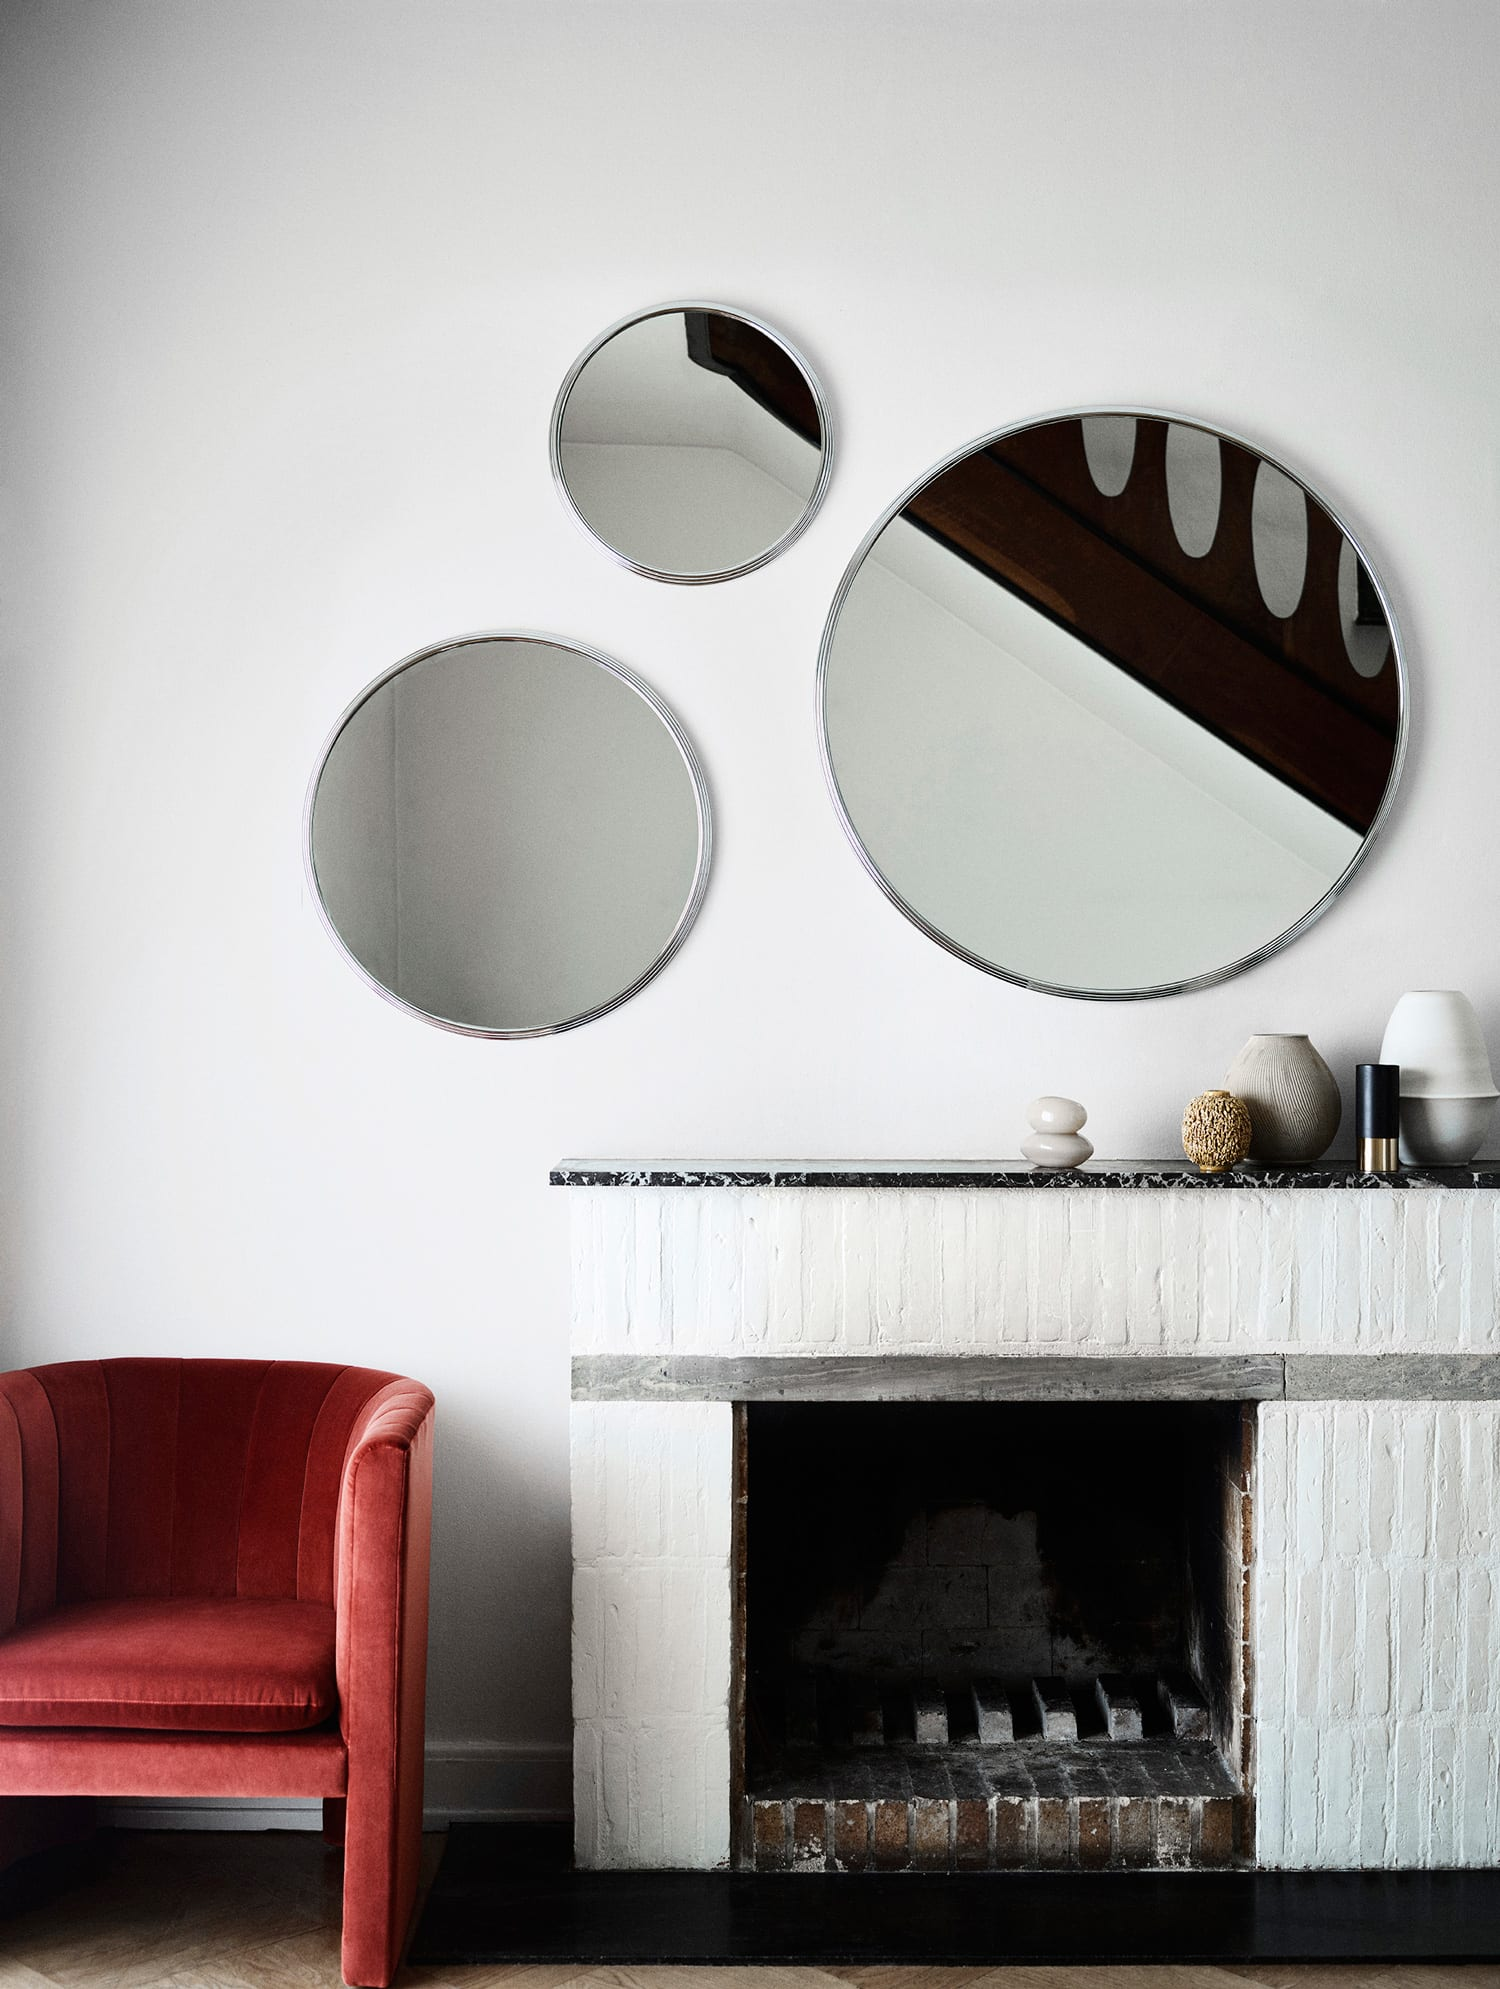 Sillon Mirrors by Sebastian Herkner for &Tradition at Imm Cologne 2019   Yellowtrace